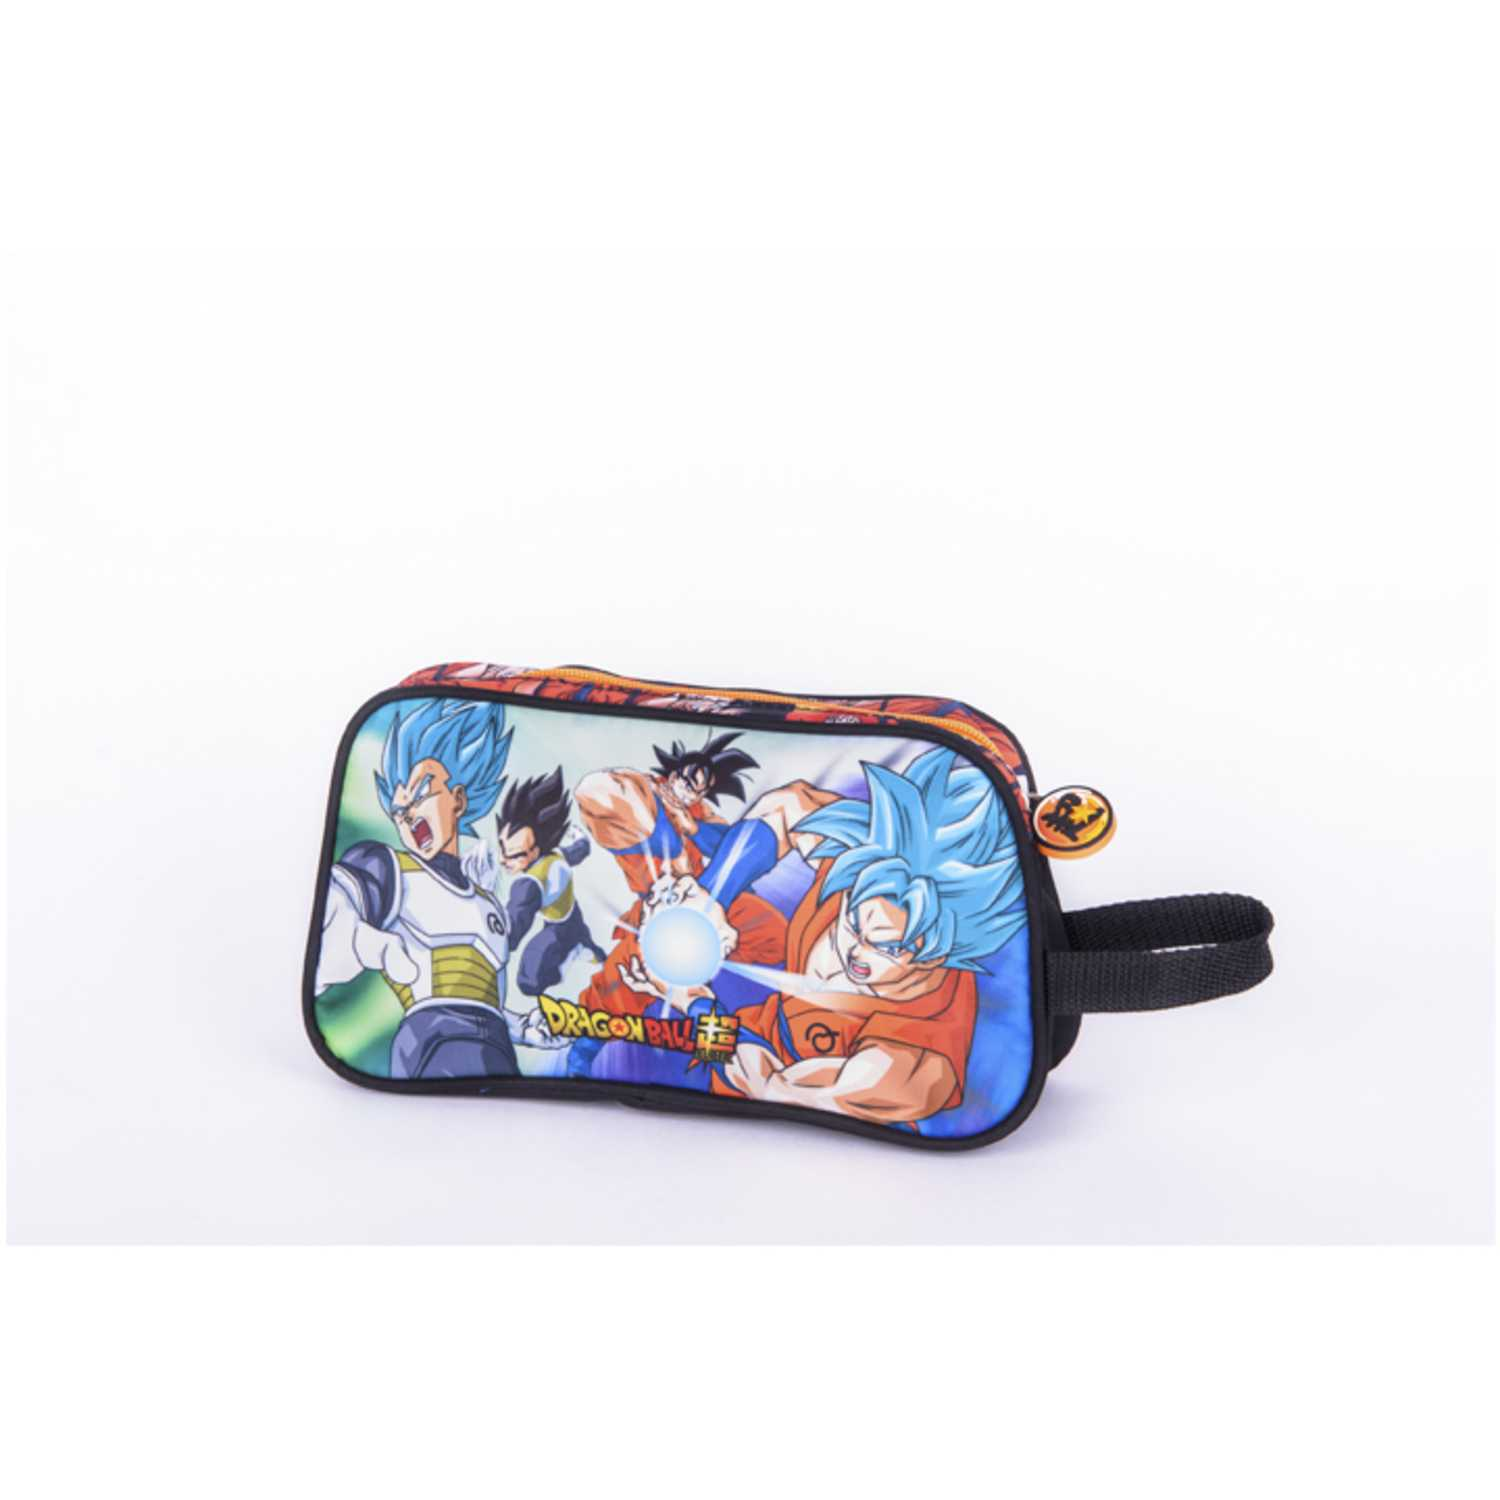 Cartuchera de Niño Scool Varios 9 scool dragon ball cart cuento division